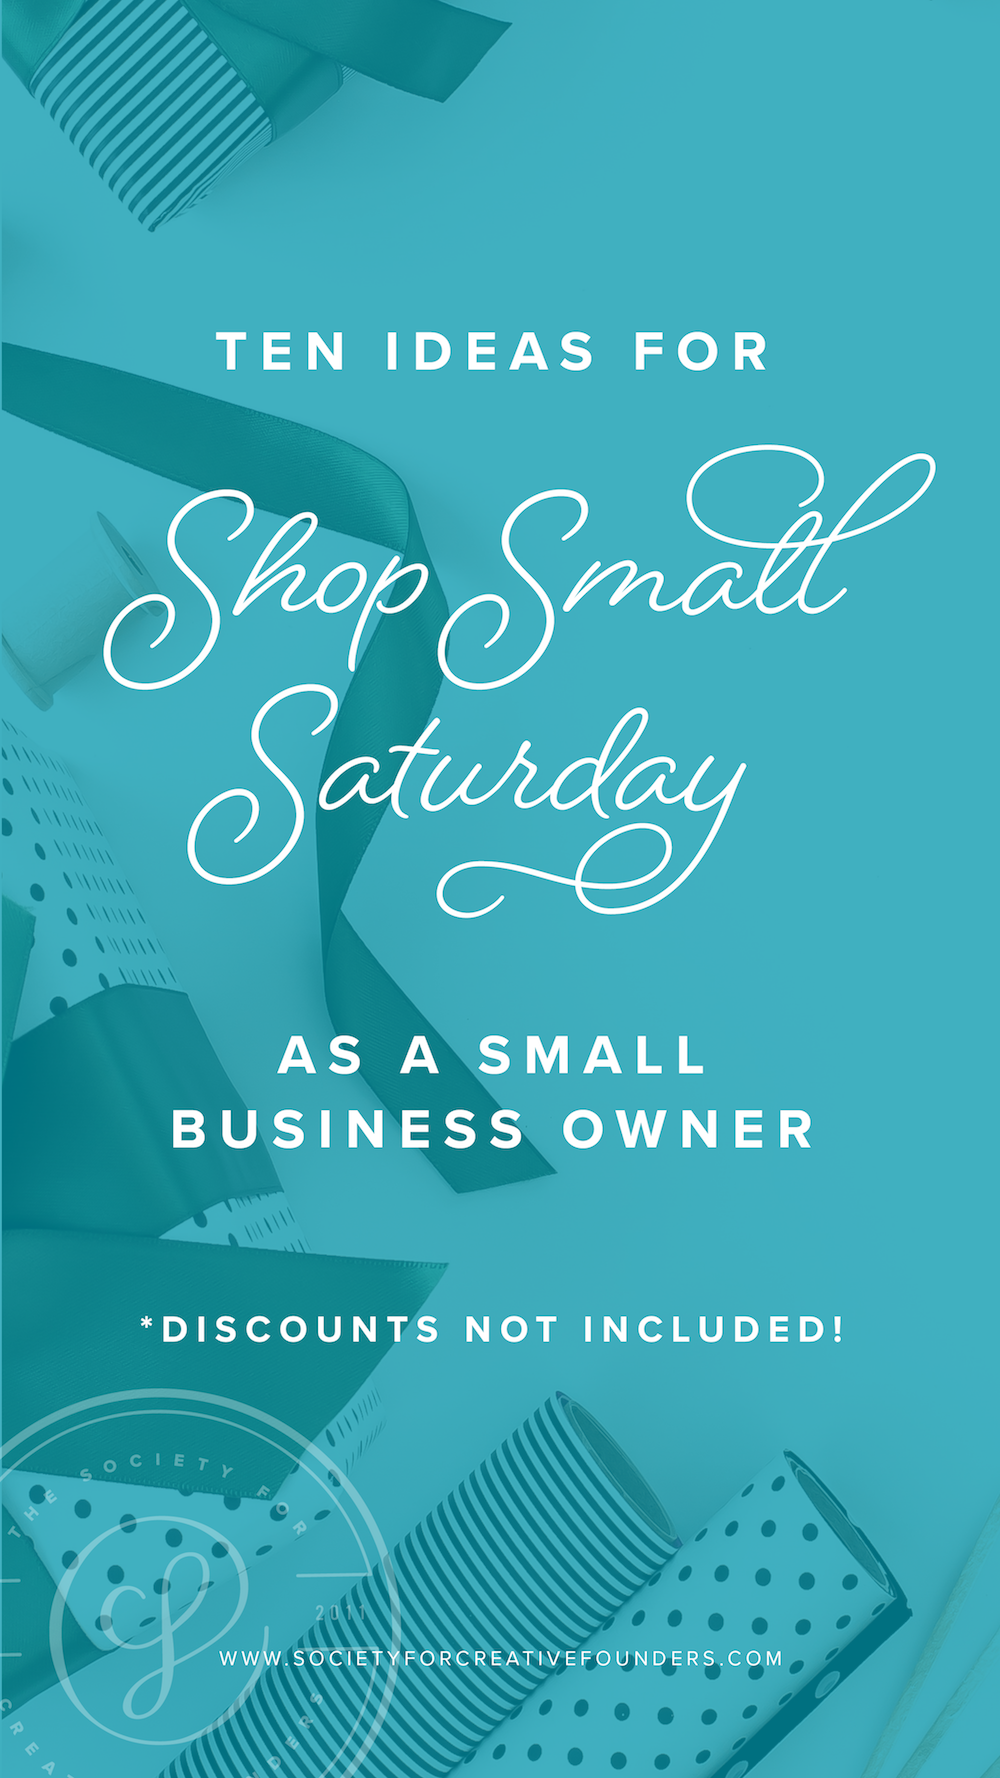 Shop Small Saturday Ideas for Small Business Owners - Society for Creative Founders